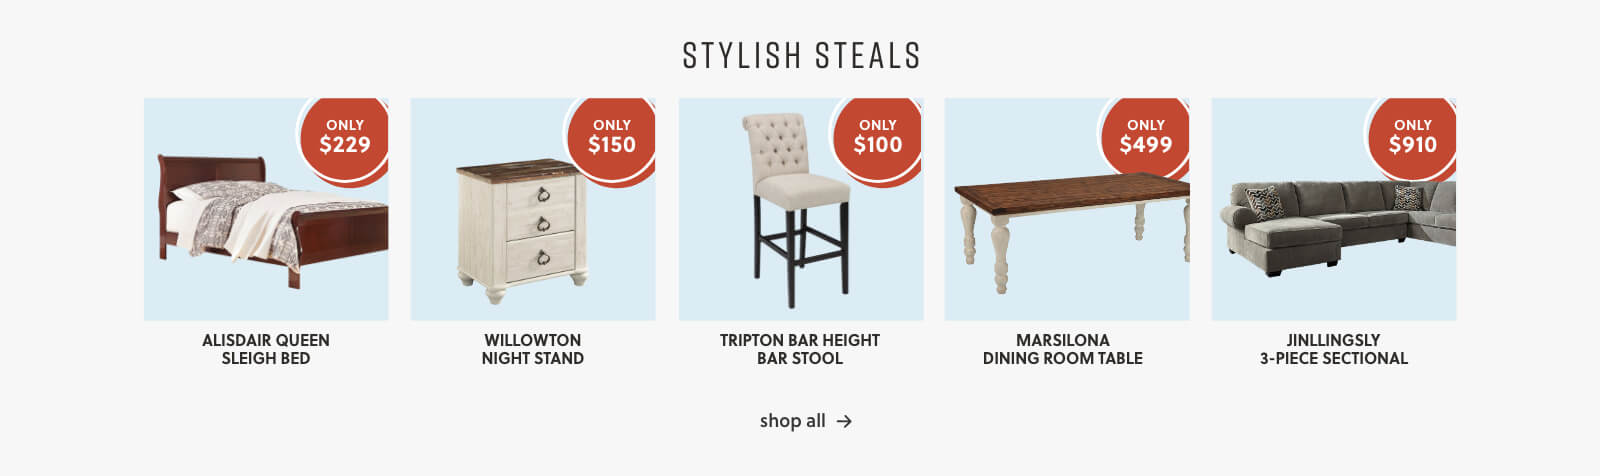 Aldwin Queen Panel Bed, Sorinella Queen Upholstered Bed, Beachcroft Dining Table, Marsilona Dining Table, Gamaliel 2 Piece Sectional